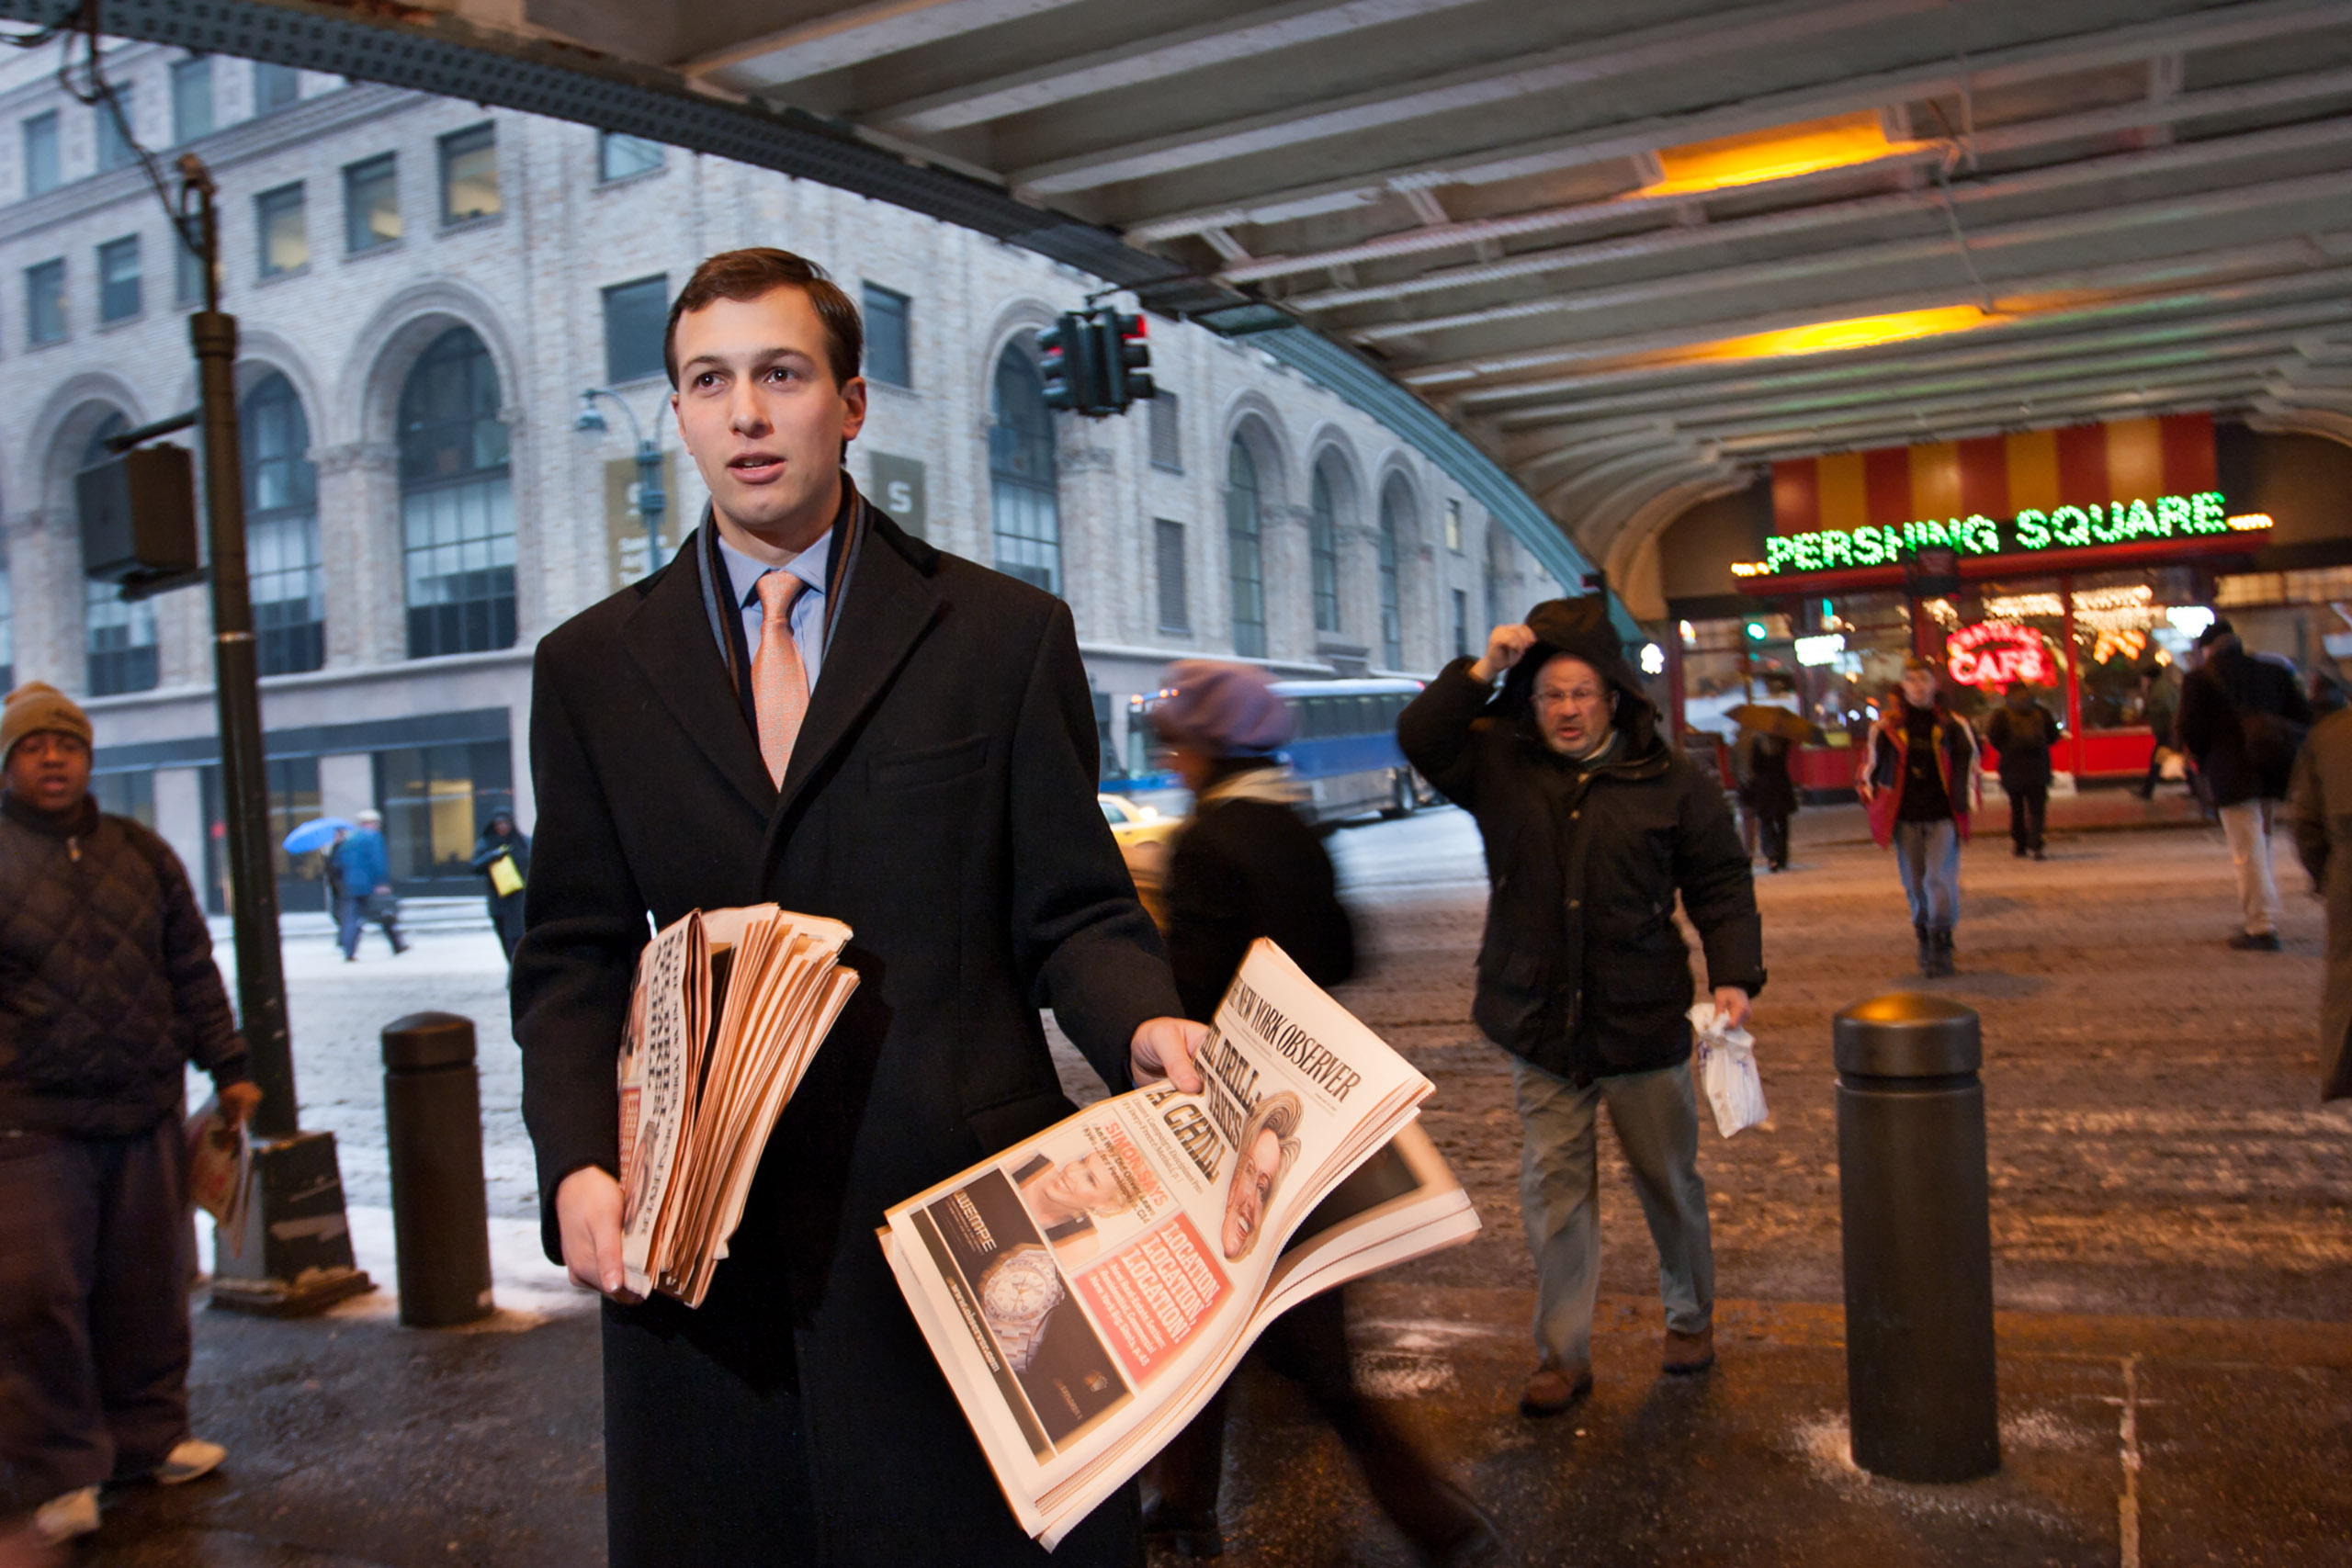 Jared Kushner handing out free copies of The New York Observer's first issue published under his new ownership, in front of Grand Central Station 42nd St., New York City, Feb. 14, 2007.